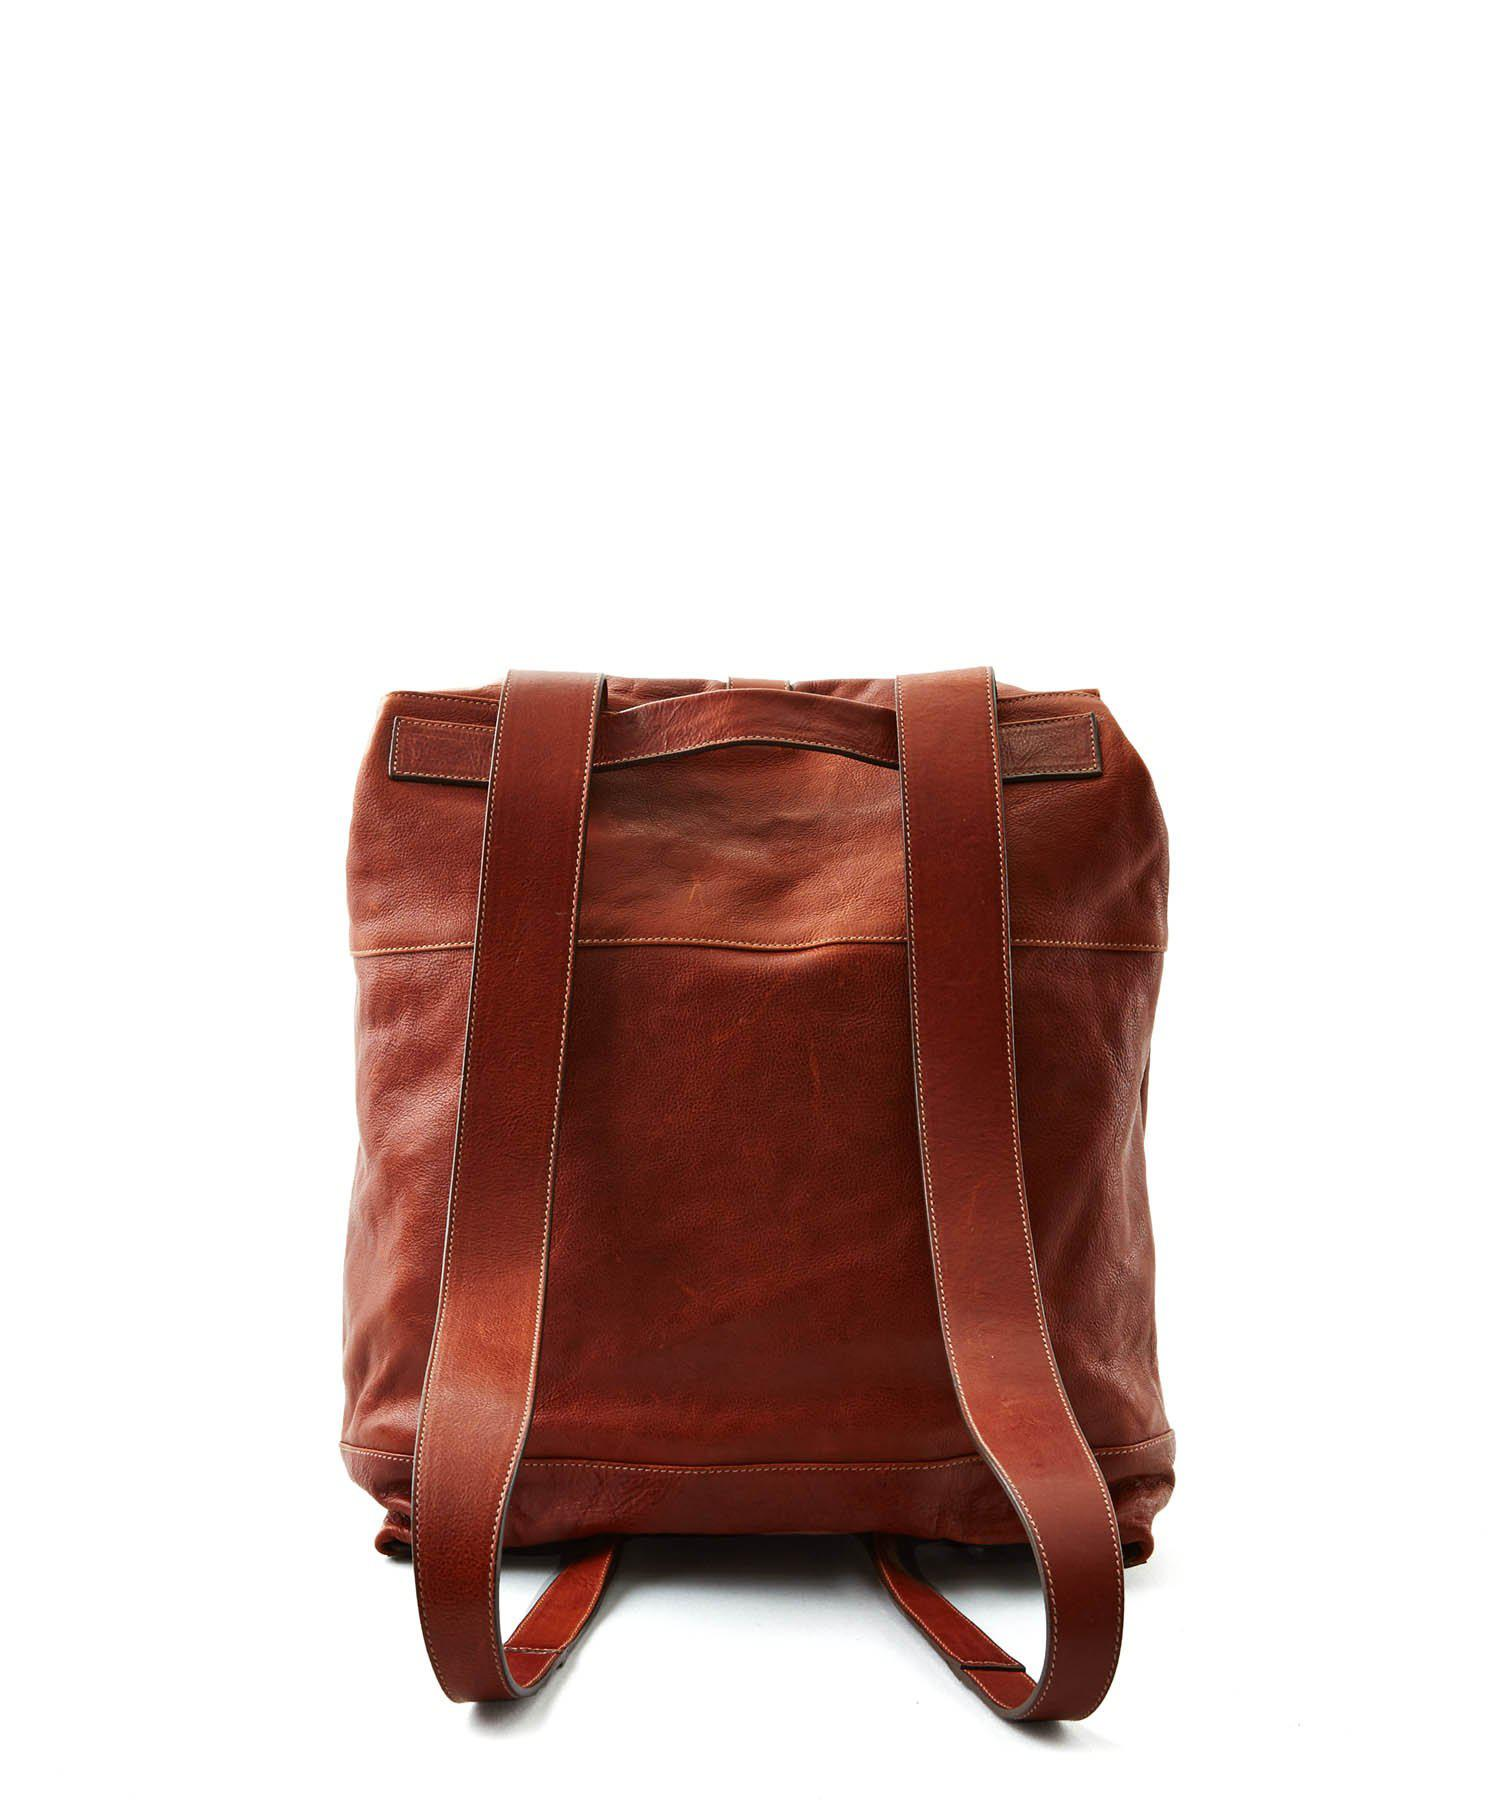 Todd Synder X Champion Leather Il Bisonte Cowhide Backpack in Brown